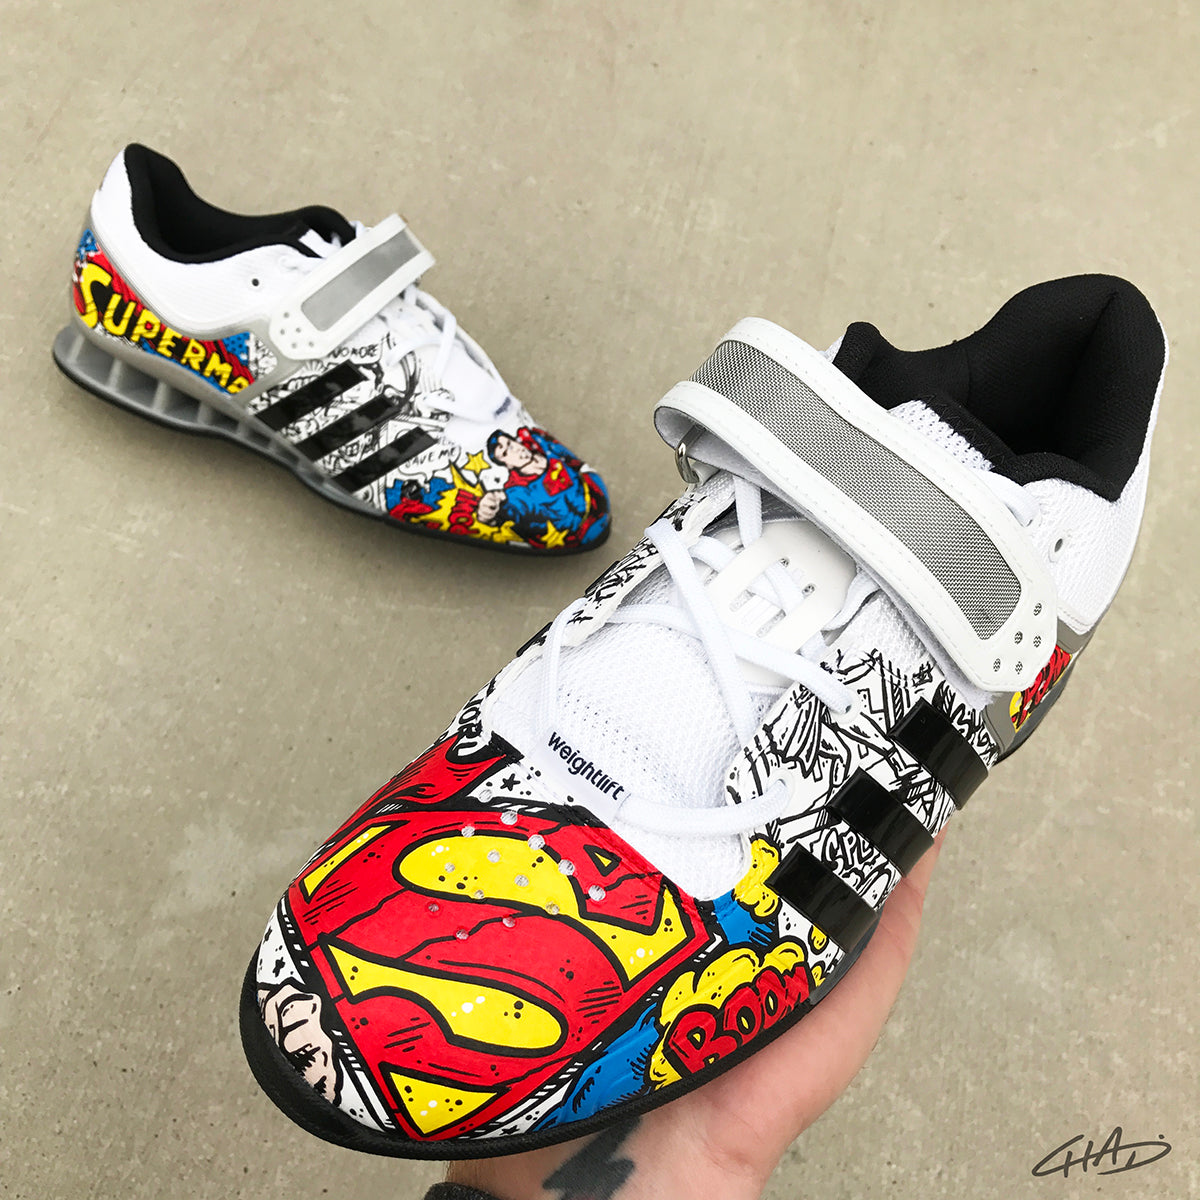 Superman Custom Hand Painted Adidas Adipowers - Olympic Weightlifting Crossfit shoes